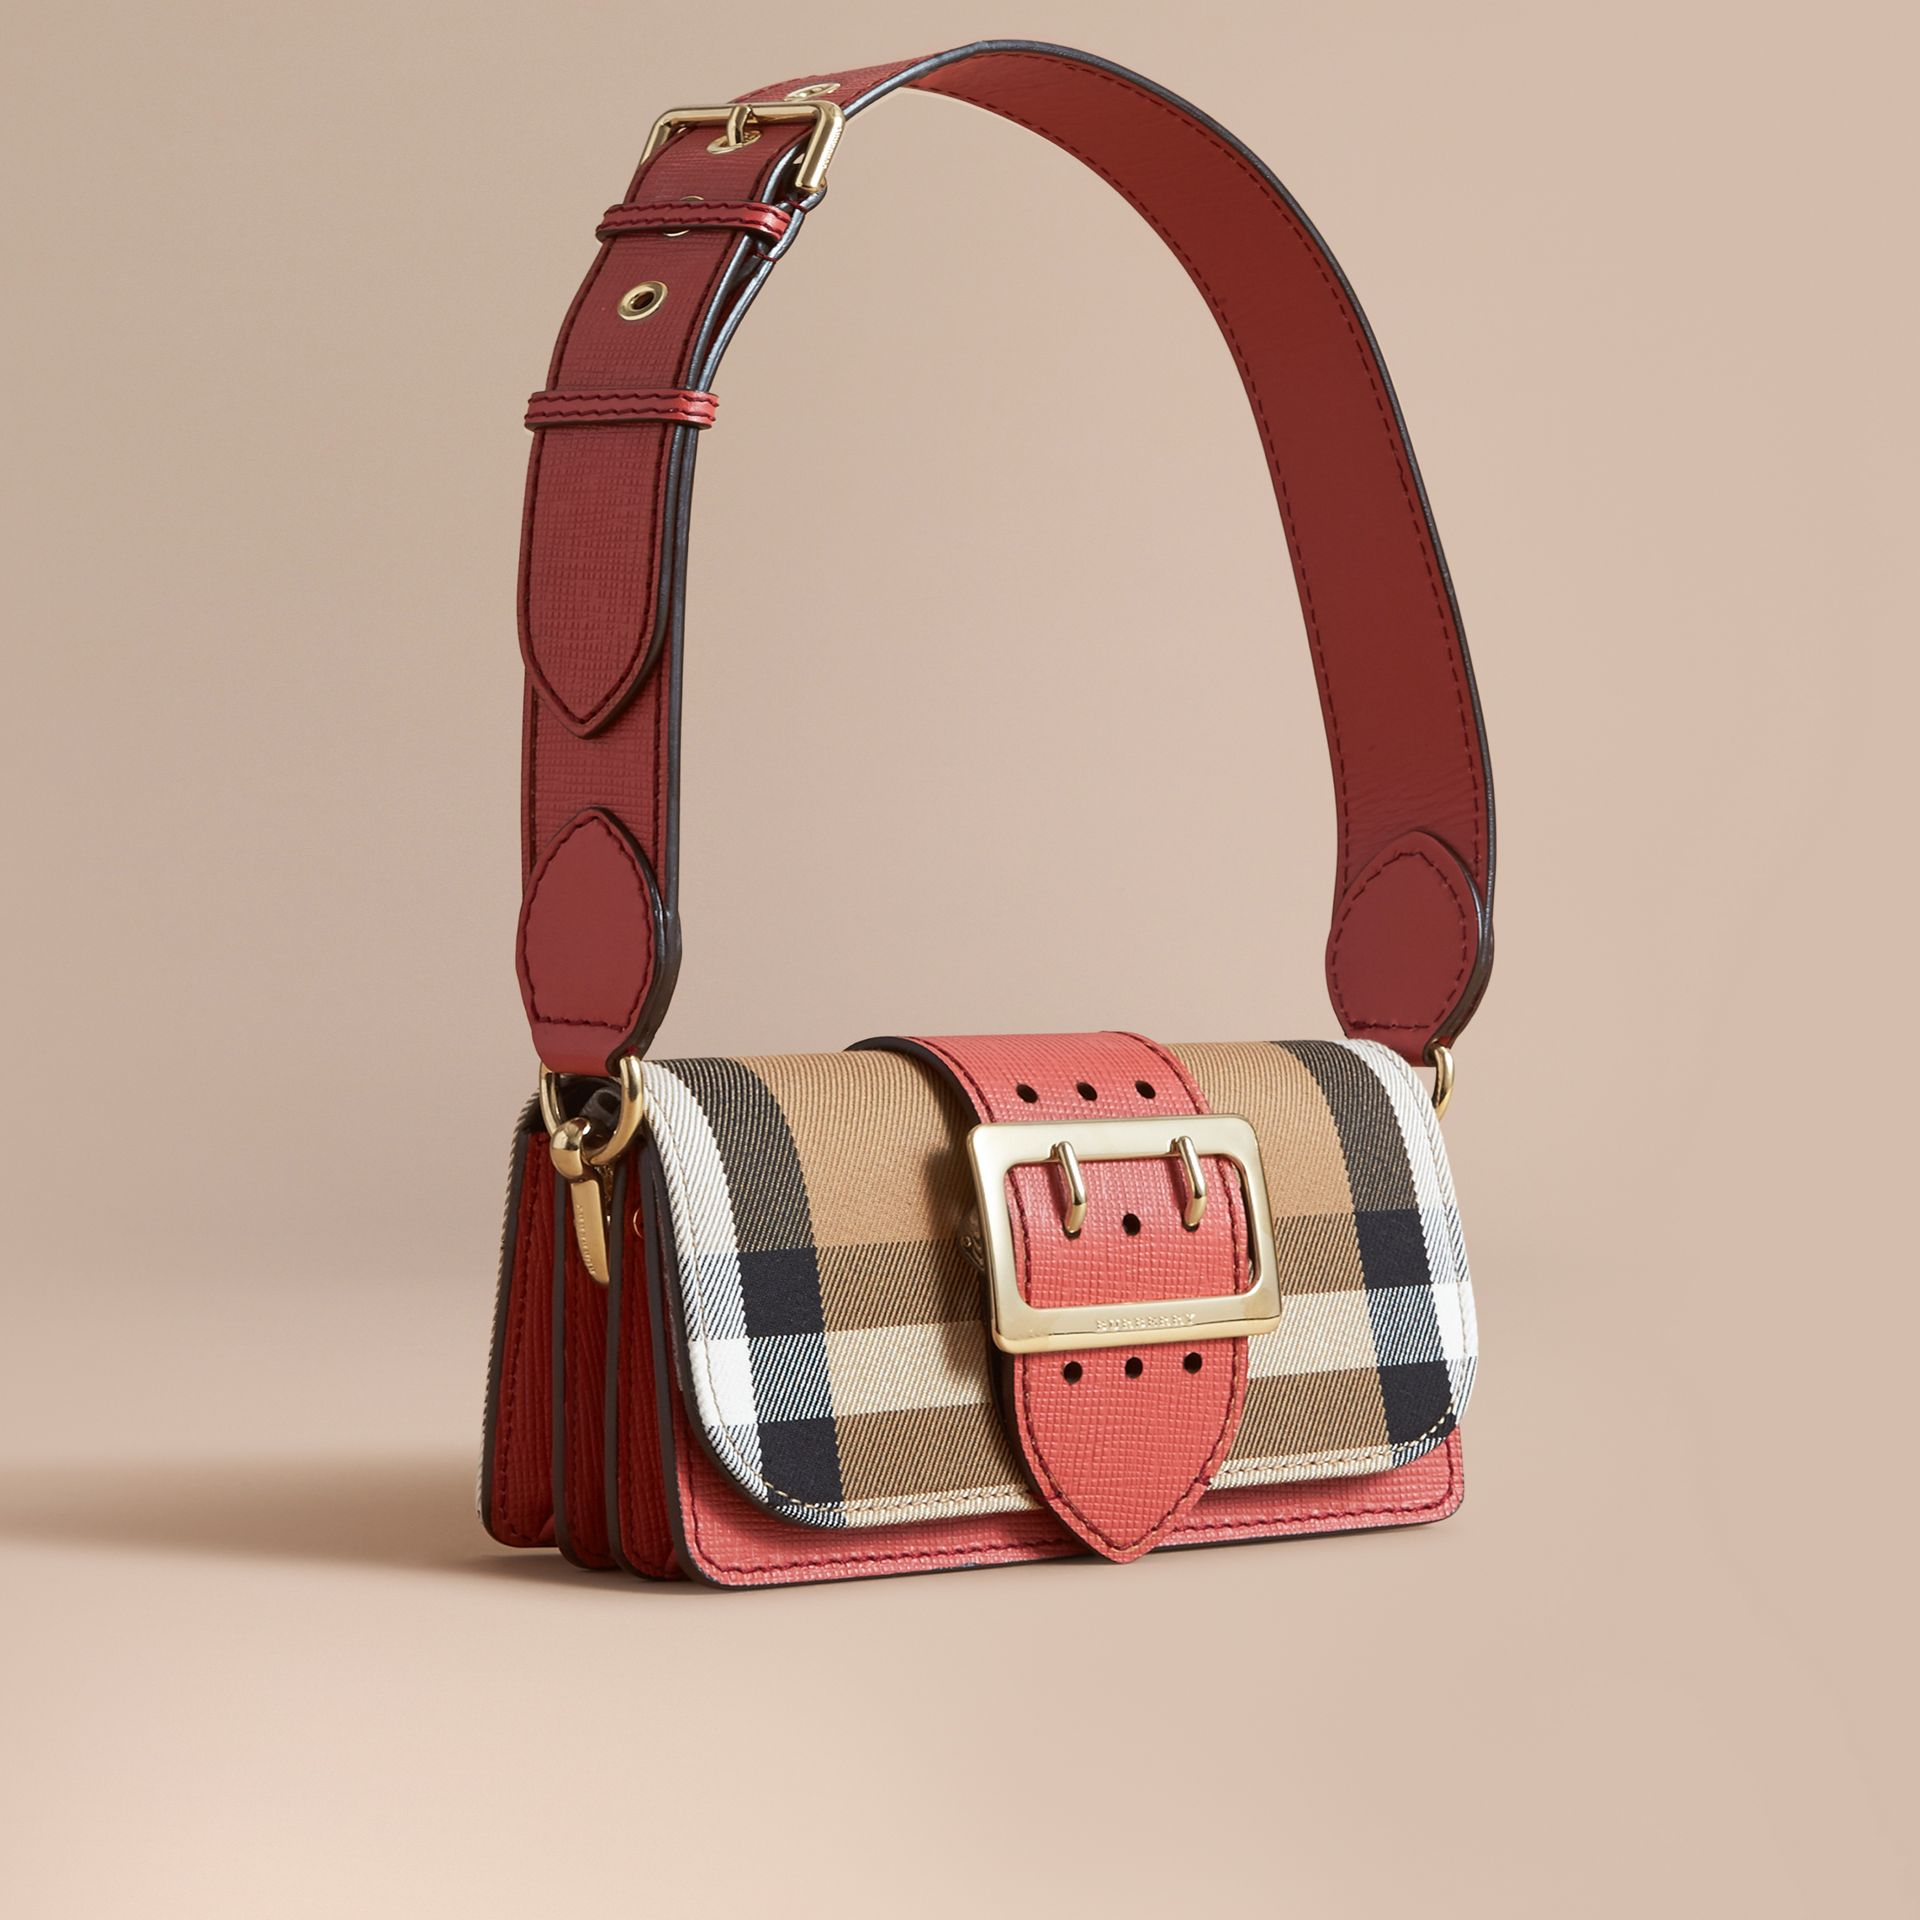 The Small Buckle Bag in House Check and Leather in Cinnamon Red - Women | Burberry Singapore - gallery image 0